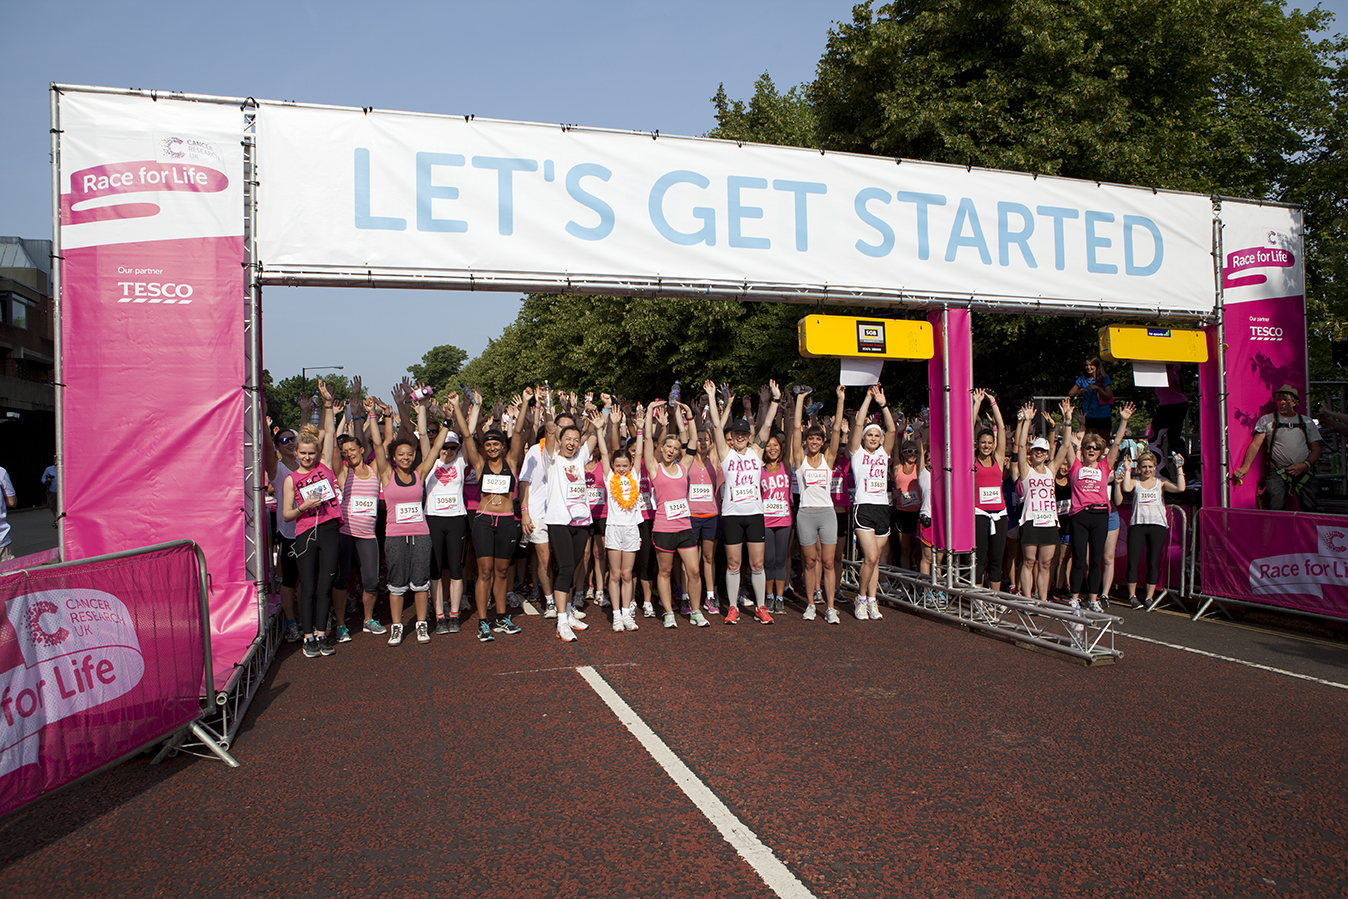 Race for Life 5k: Meet three inspiring cancer survivors